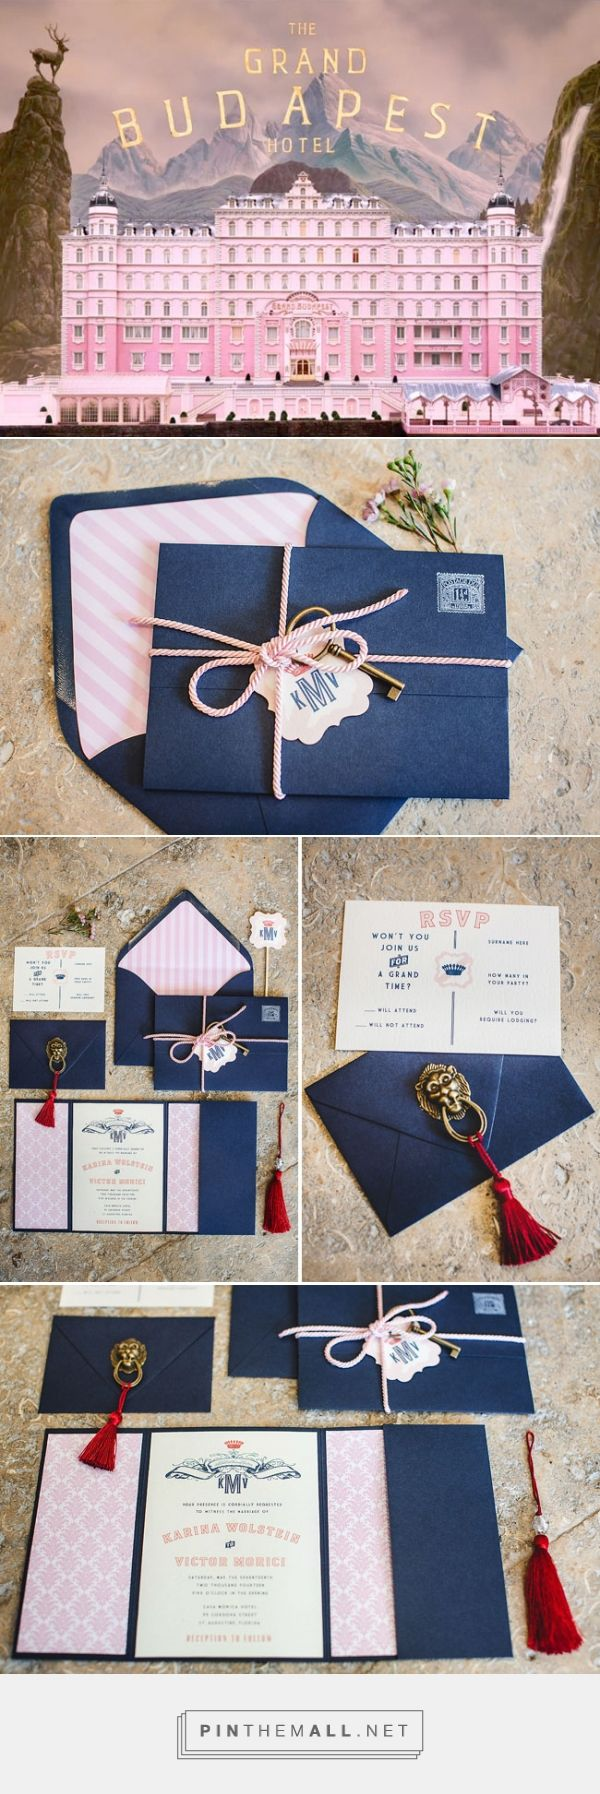 The Grand Budapest Hotel Wedding Invitations by French Knot Studios   Fivestar Branding Agency – Design and Branding Agency & Curated Inspiration Gallery